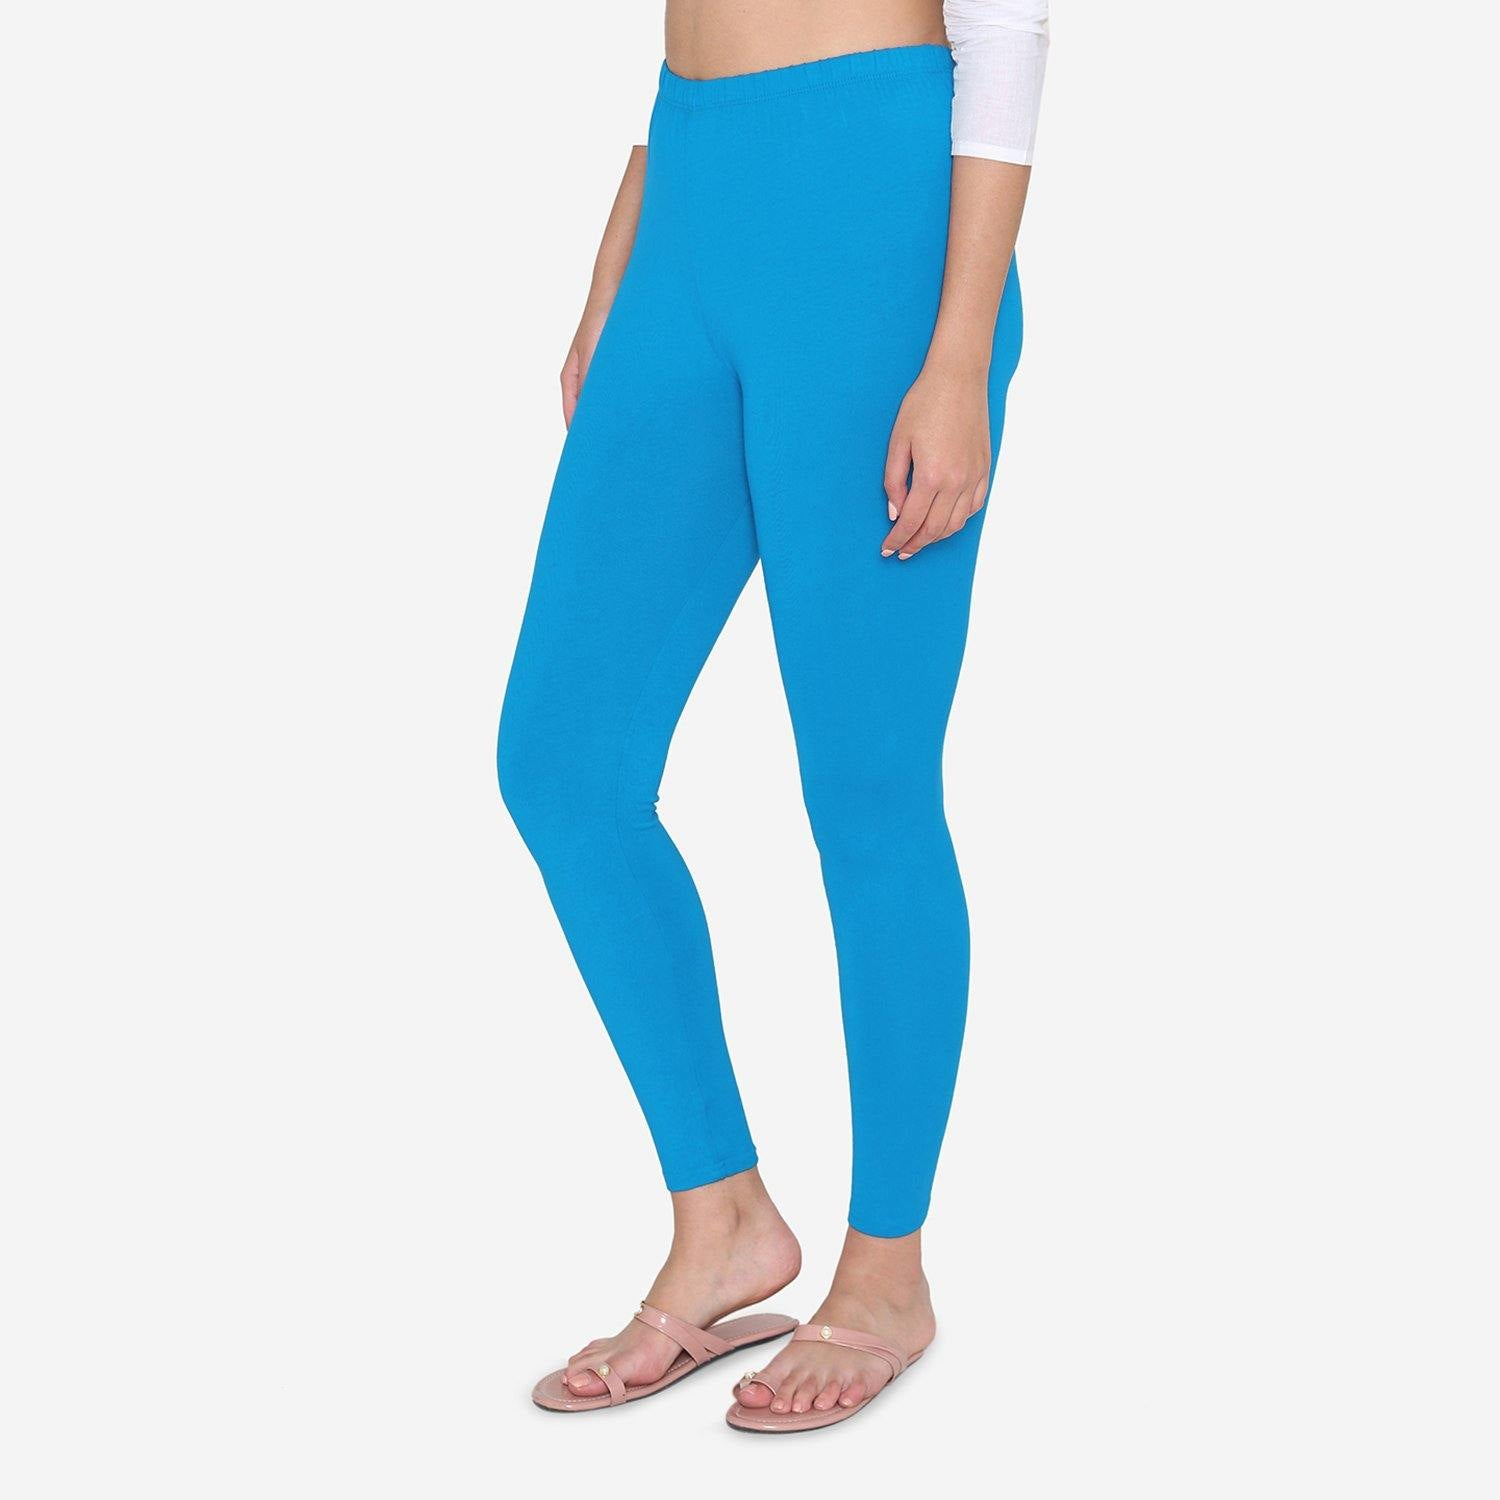 Vami Ankle Leggings